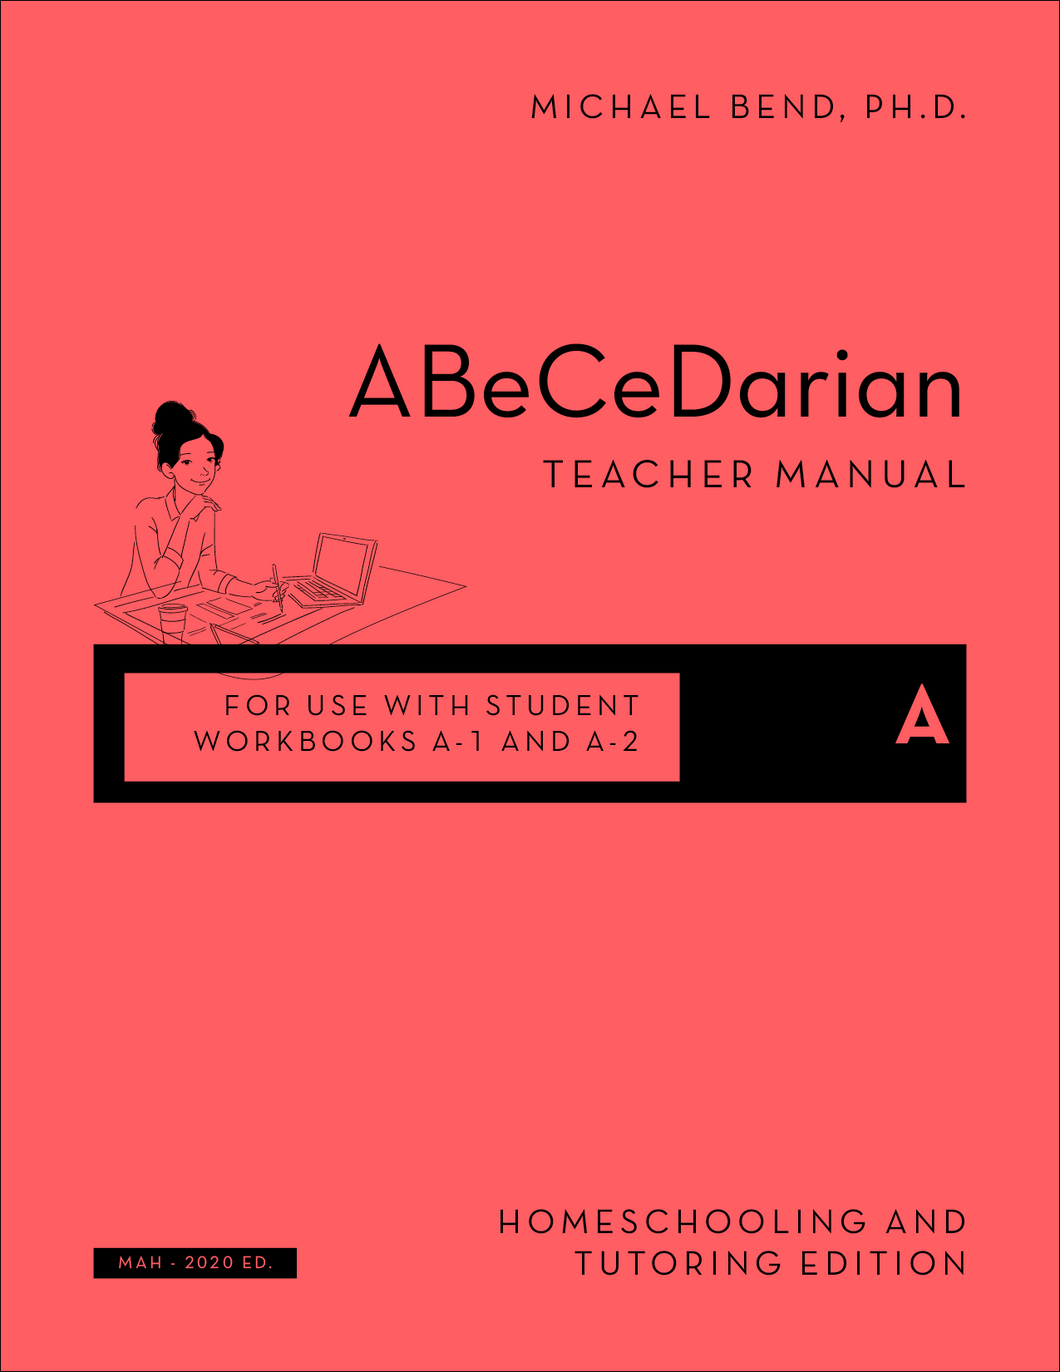 *NEW* Teacher Manual for A-1 and A-2